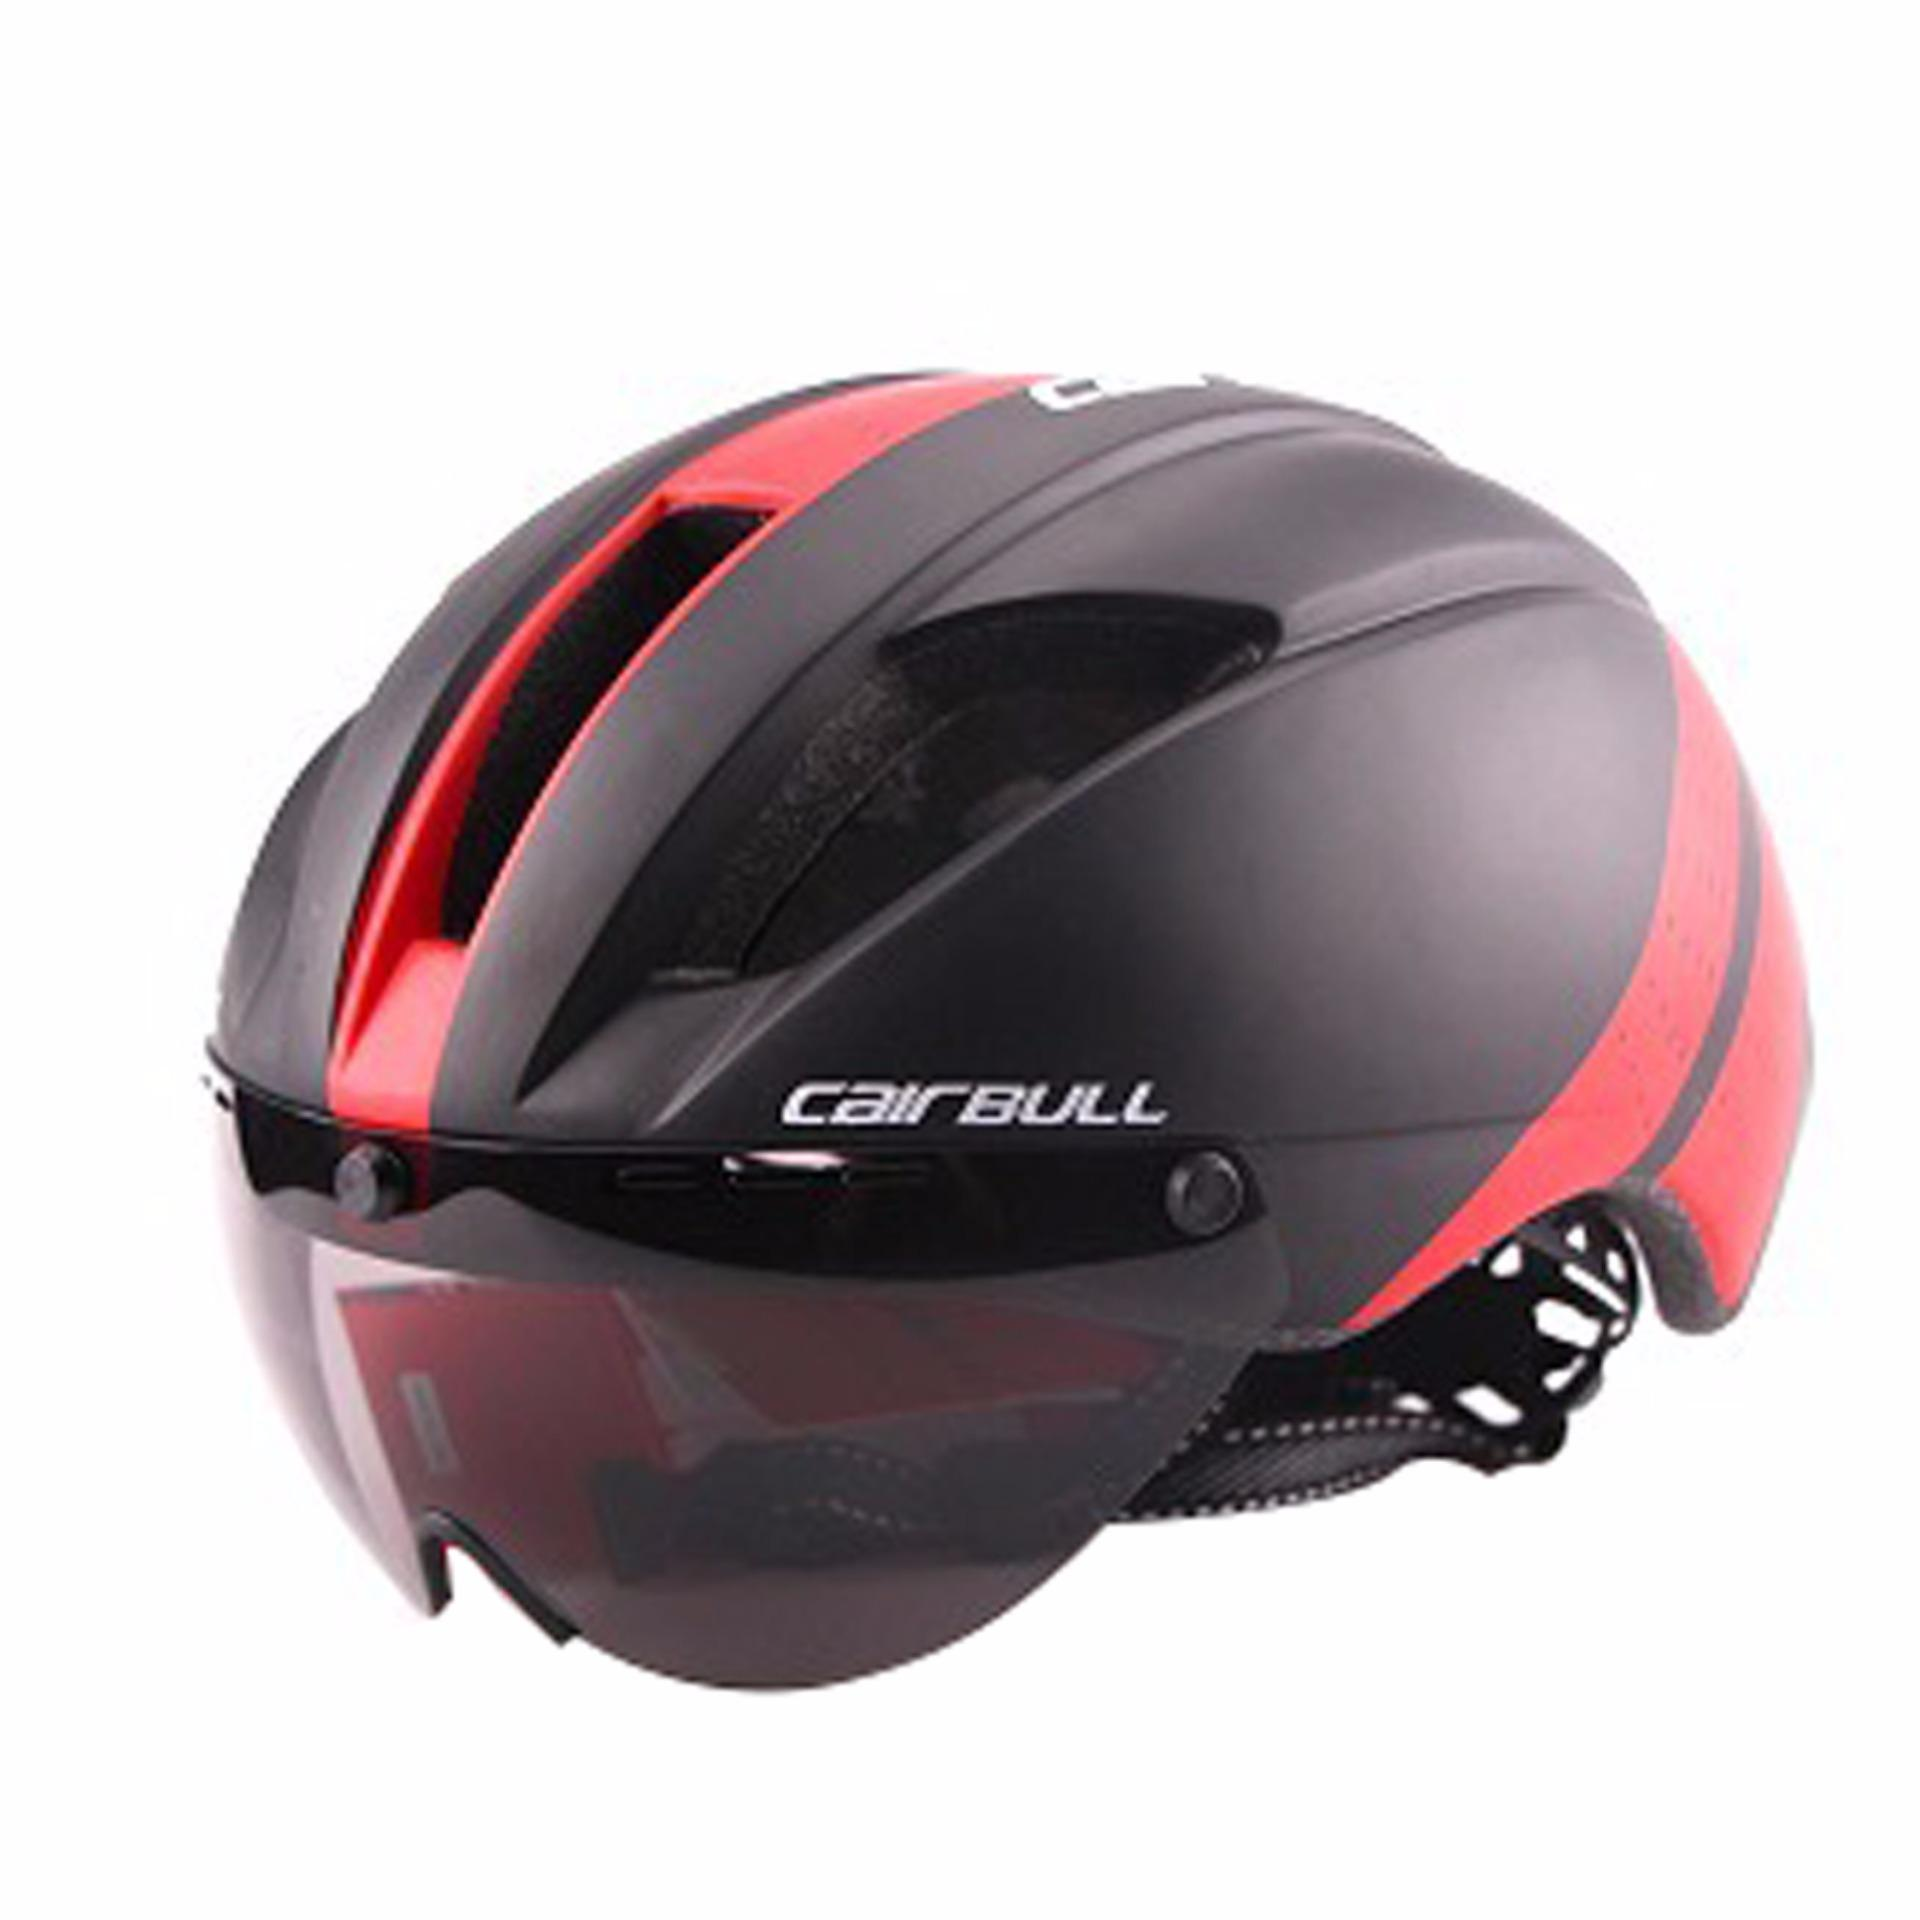 6675d41dd09 Lightweight Unisex Cycling Helmet with Detachable Magnetic Goggles  Aerodynamic Helmet for Motorcycle Bike Riding